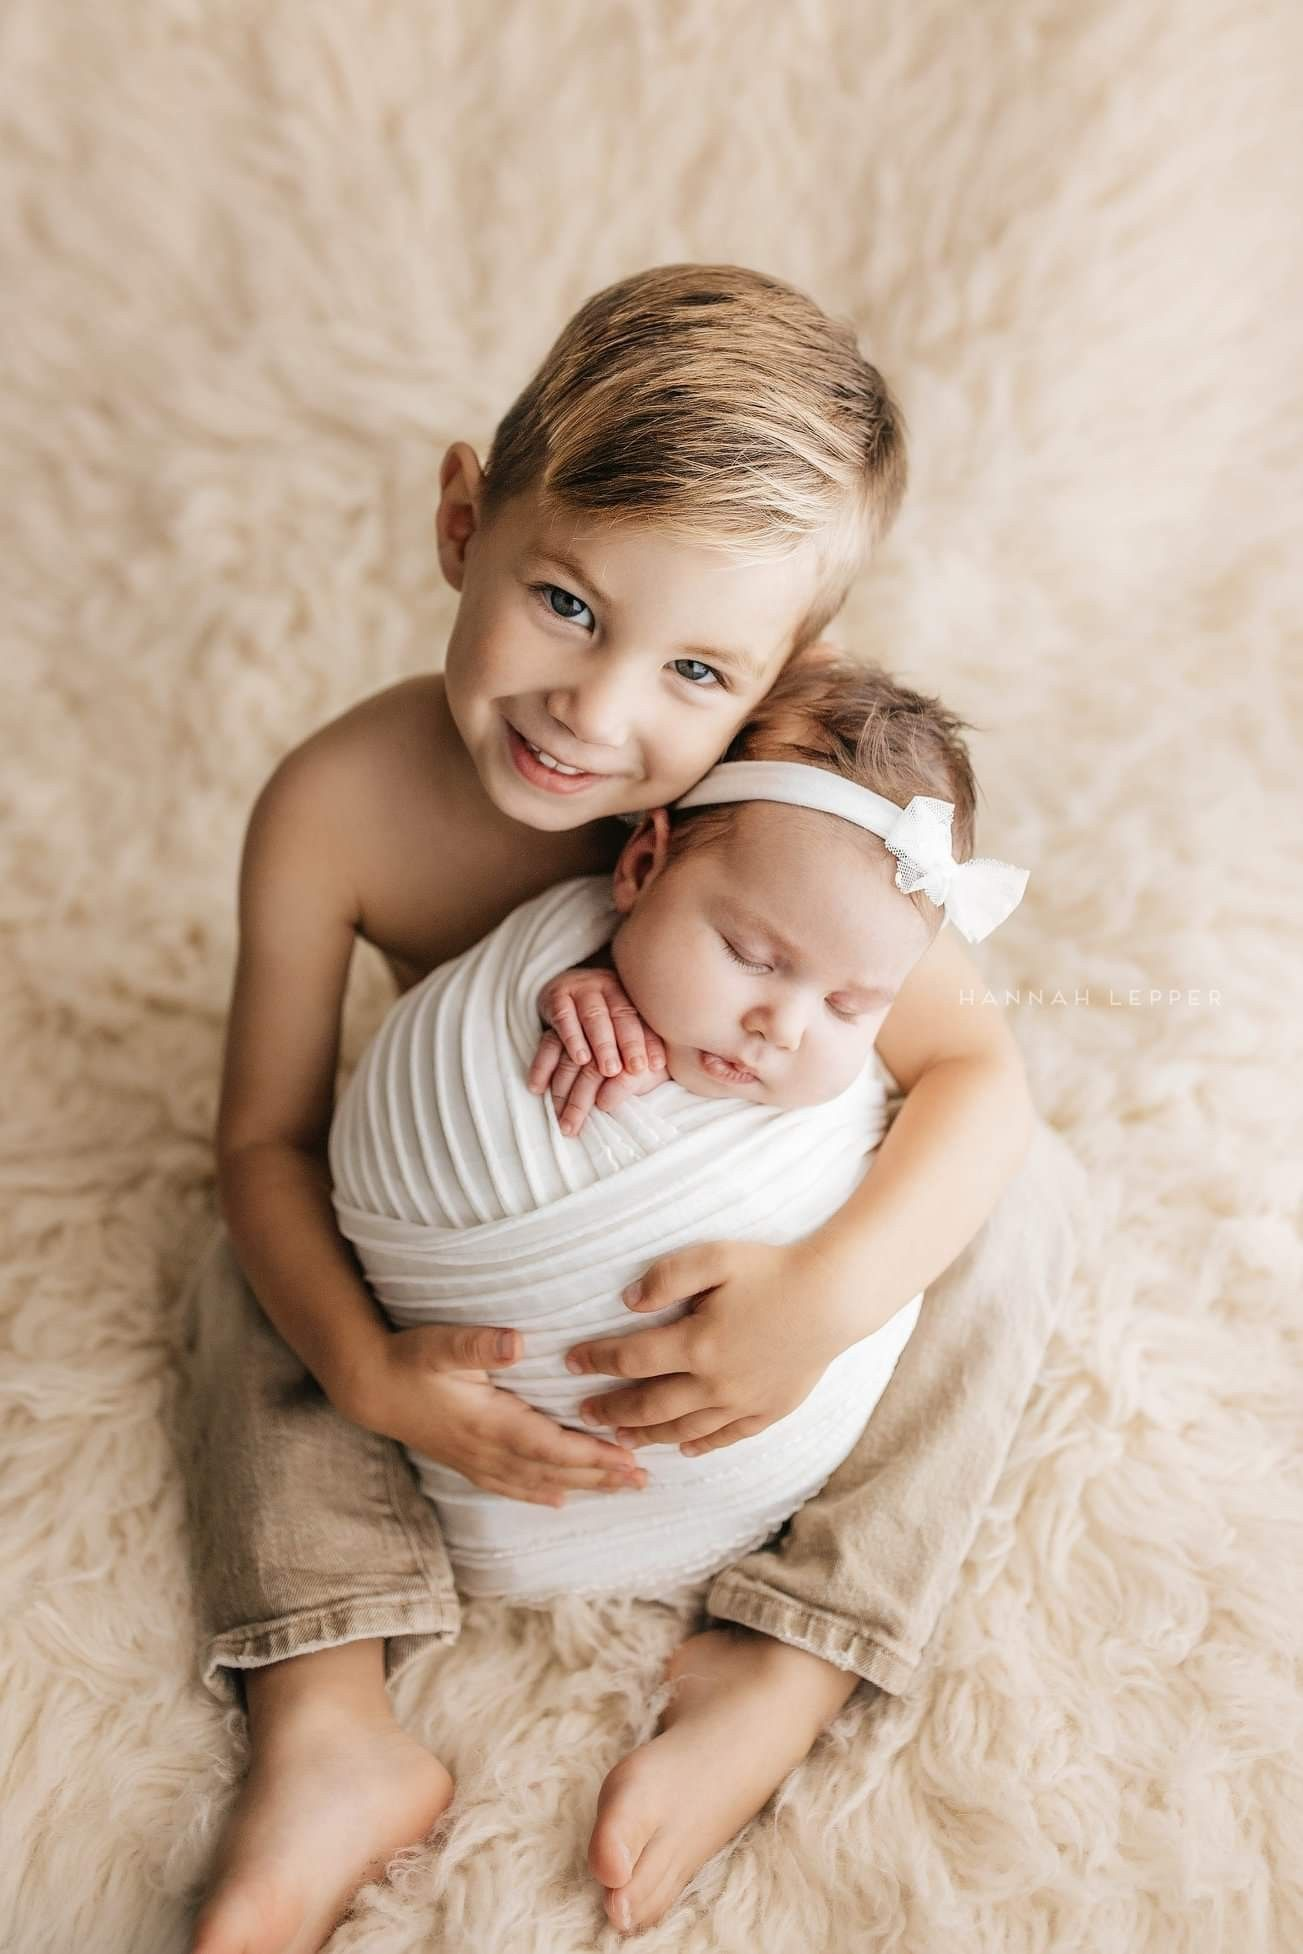 Big Brother And Little Sister Photography Hannah Lepper